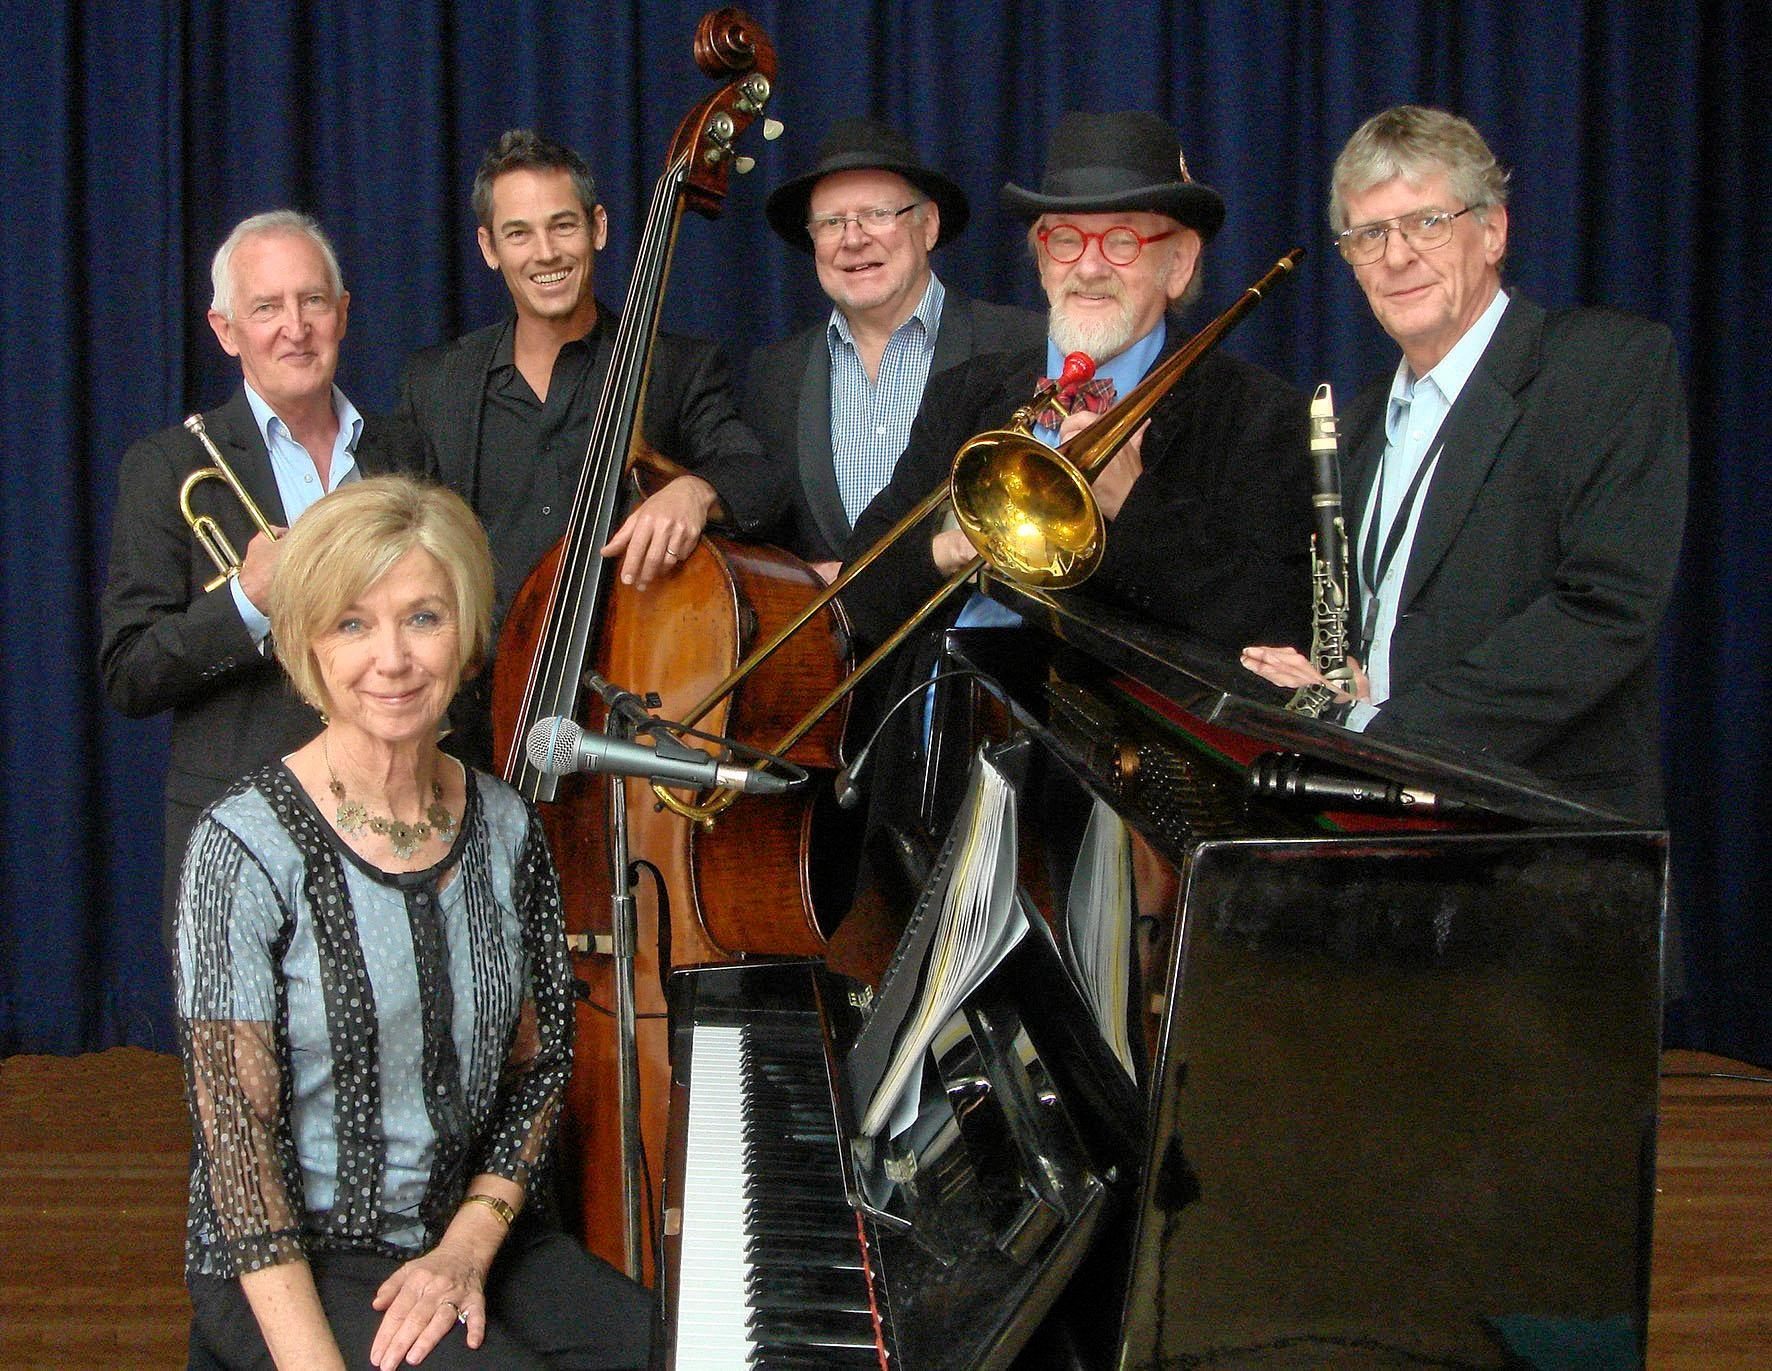 The Caxton Street Jazz Band is coming back to Caloundra, courtesy of the Sunshine Coast Jazz Club.